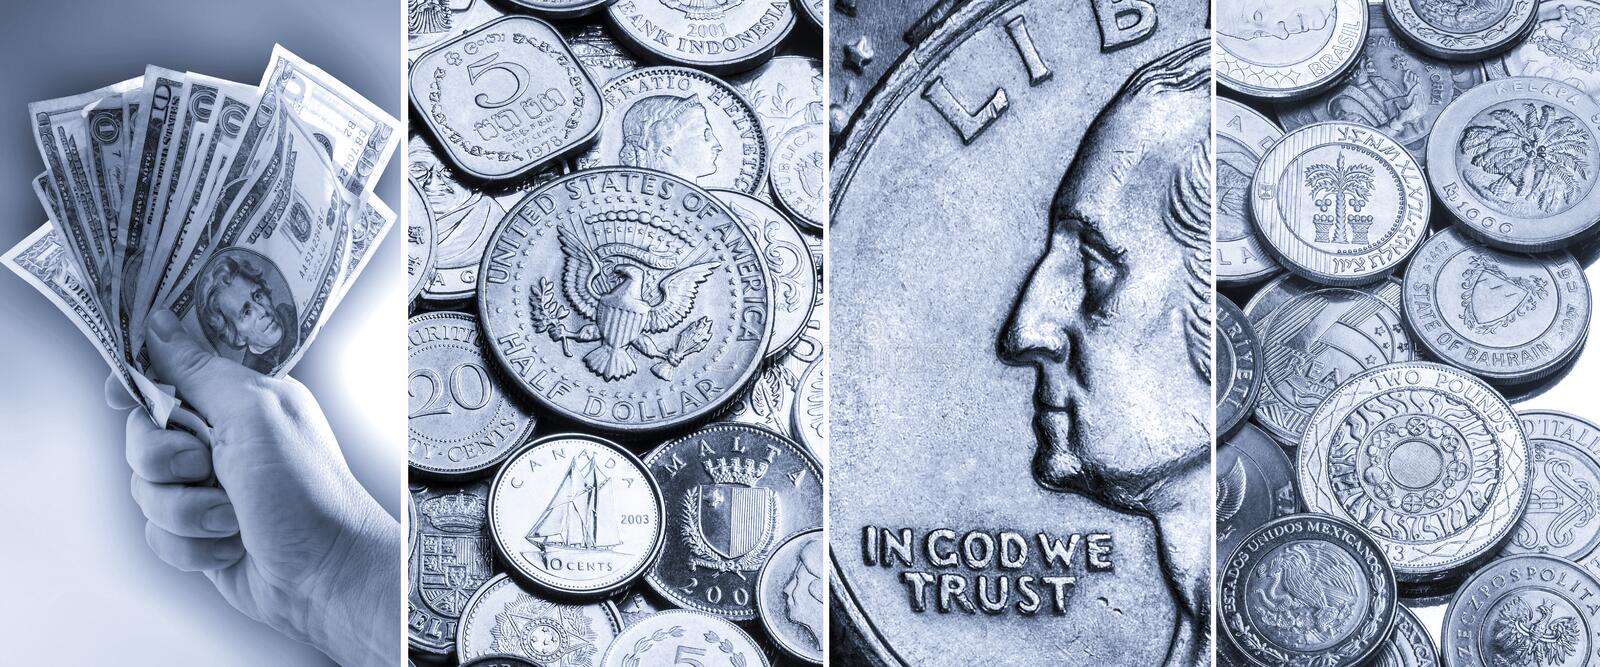 Coins and banknotes - International currency stock photo